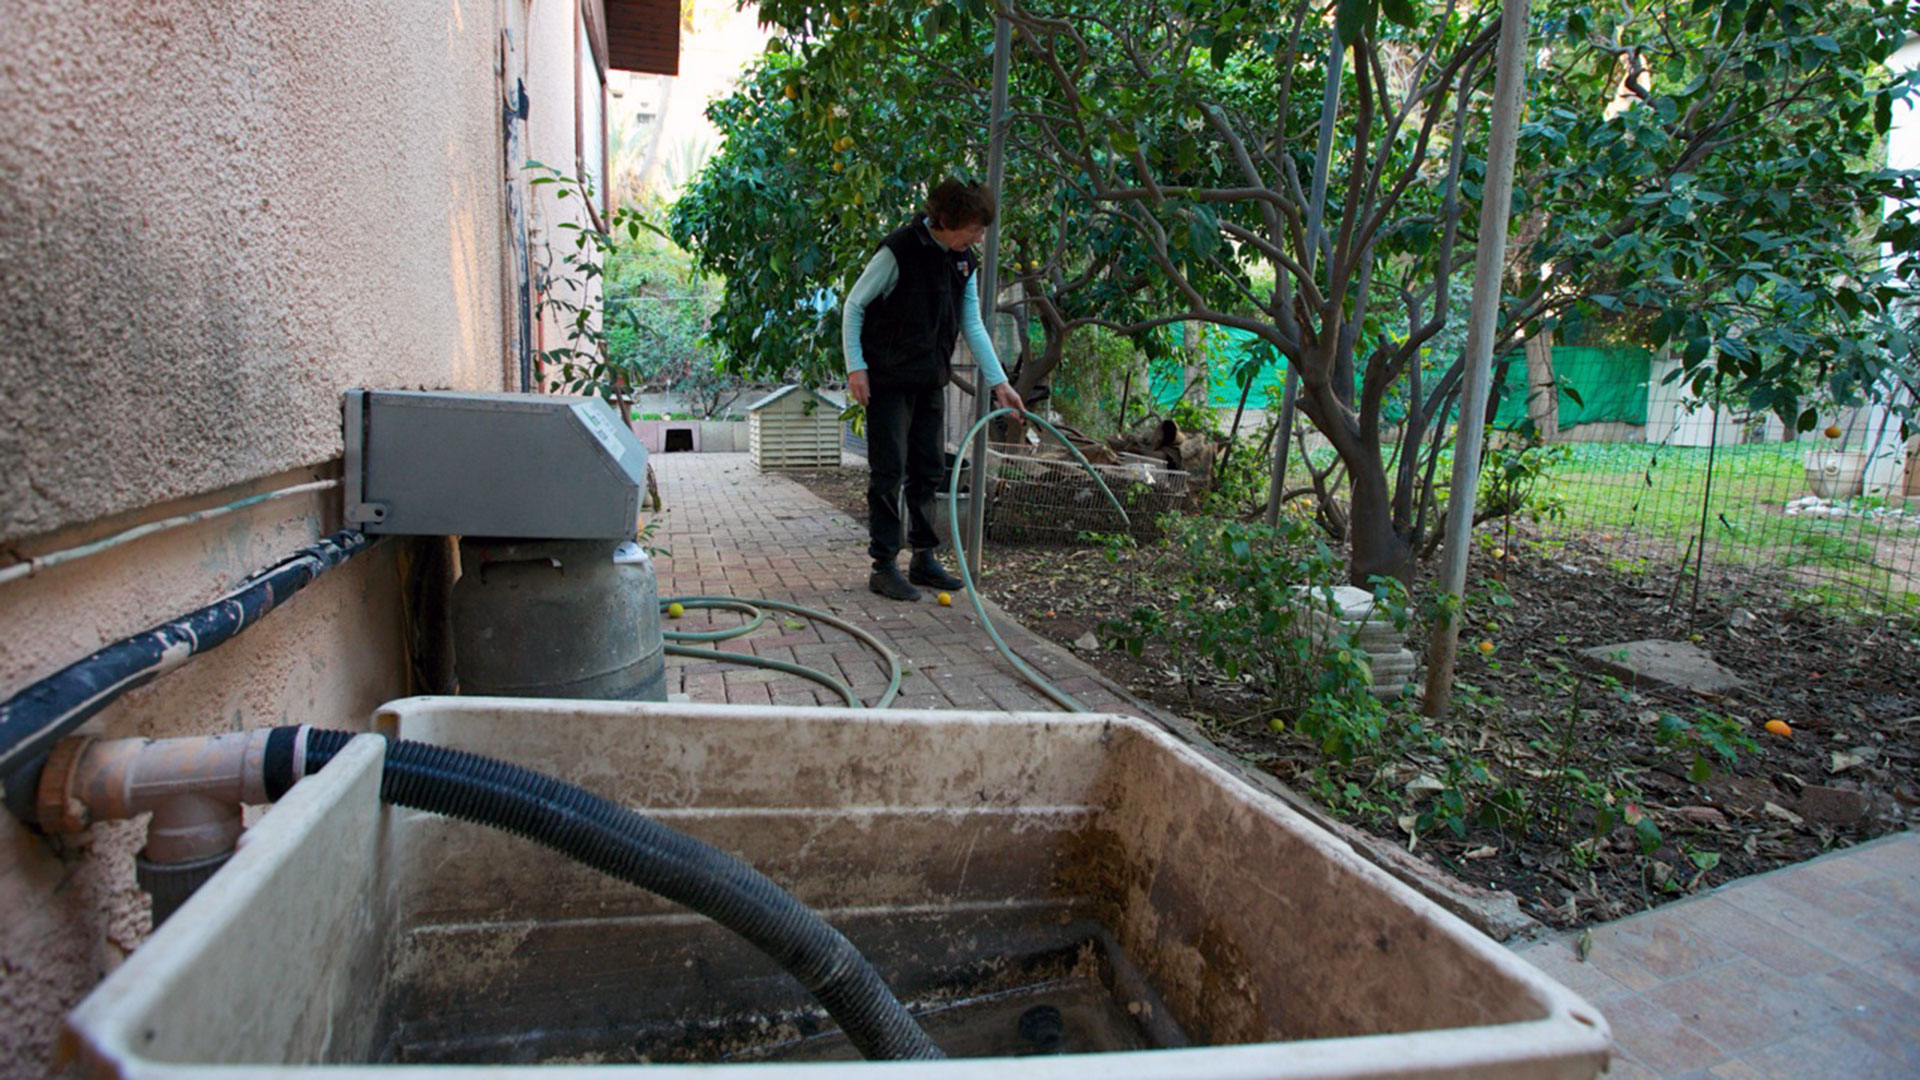 A woman holds a hose connected through a utility sink on the back of her house to water her lawn